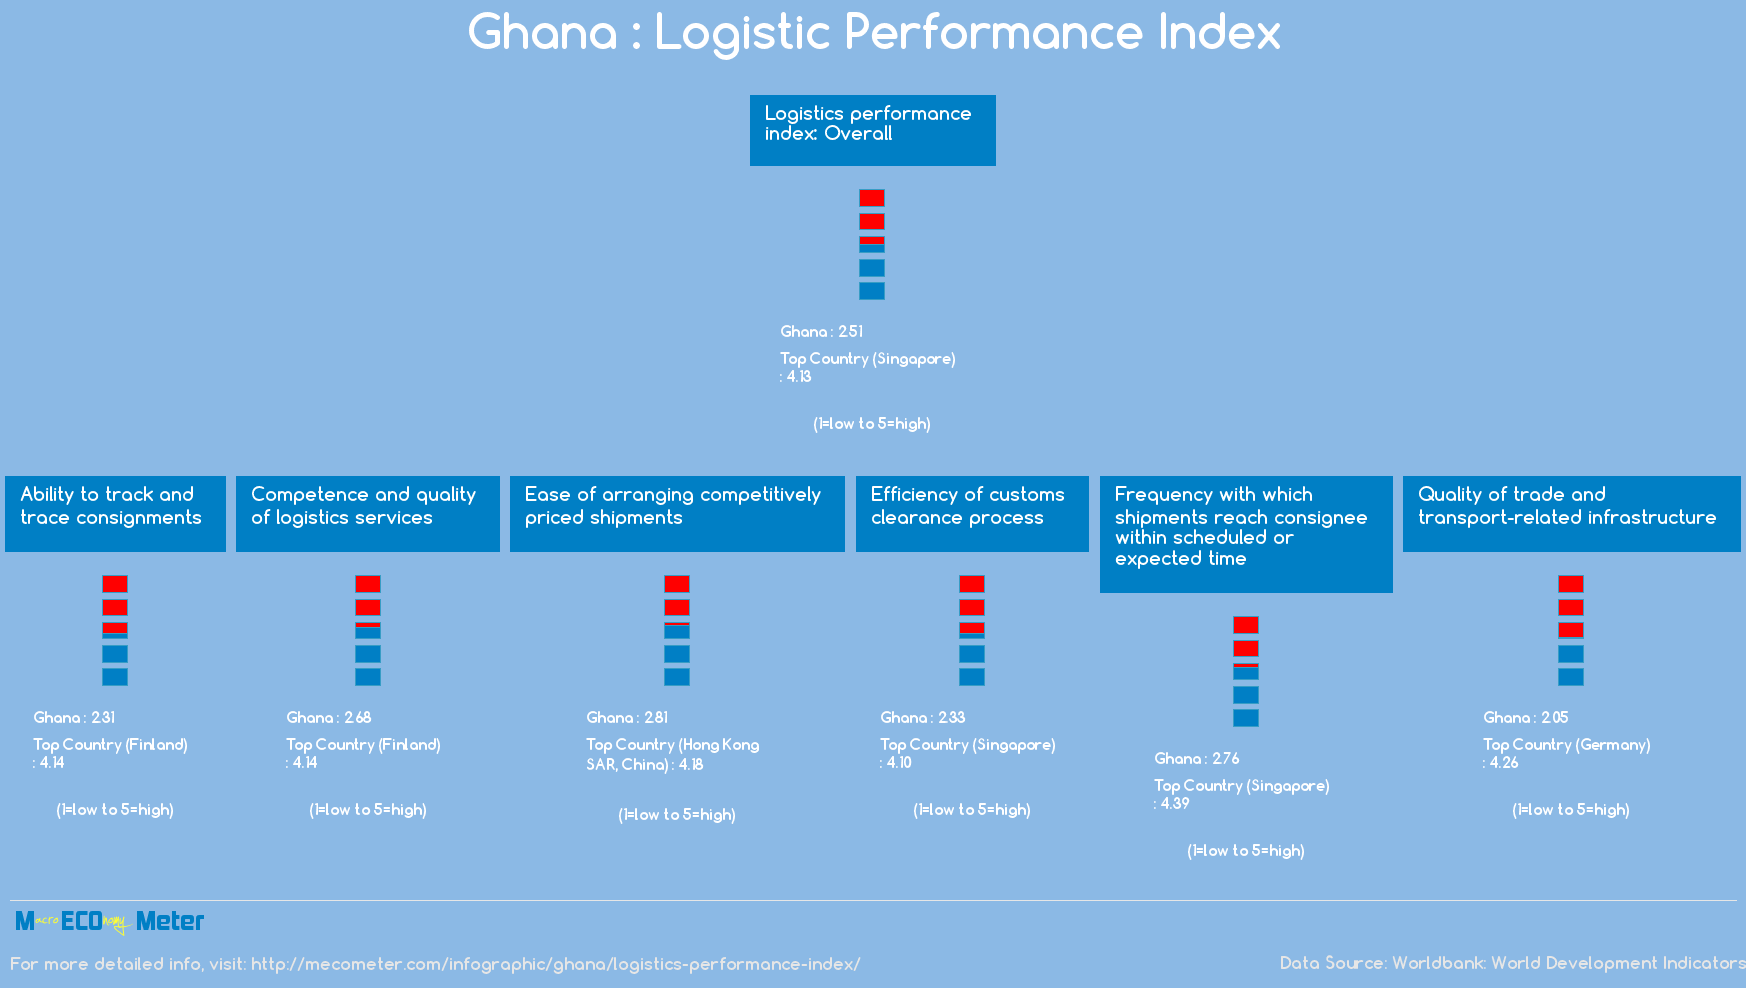 Ghana : Logistic Performance Index